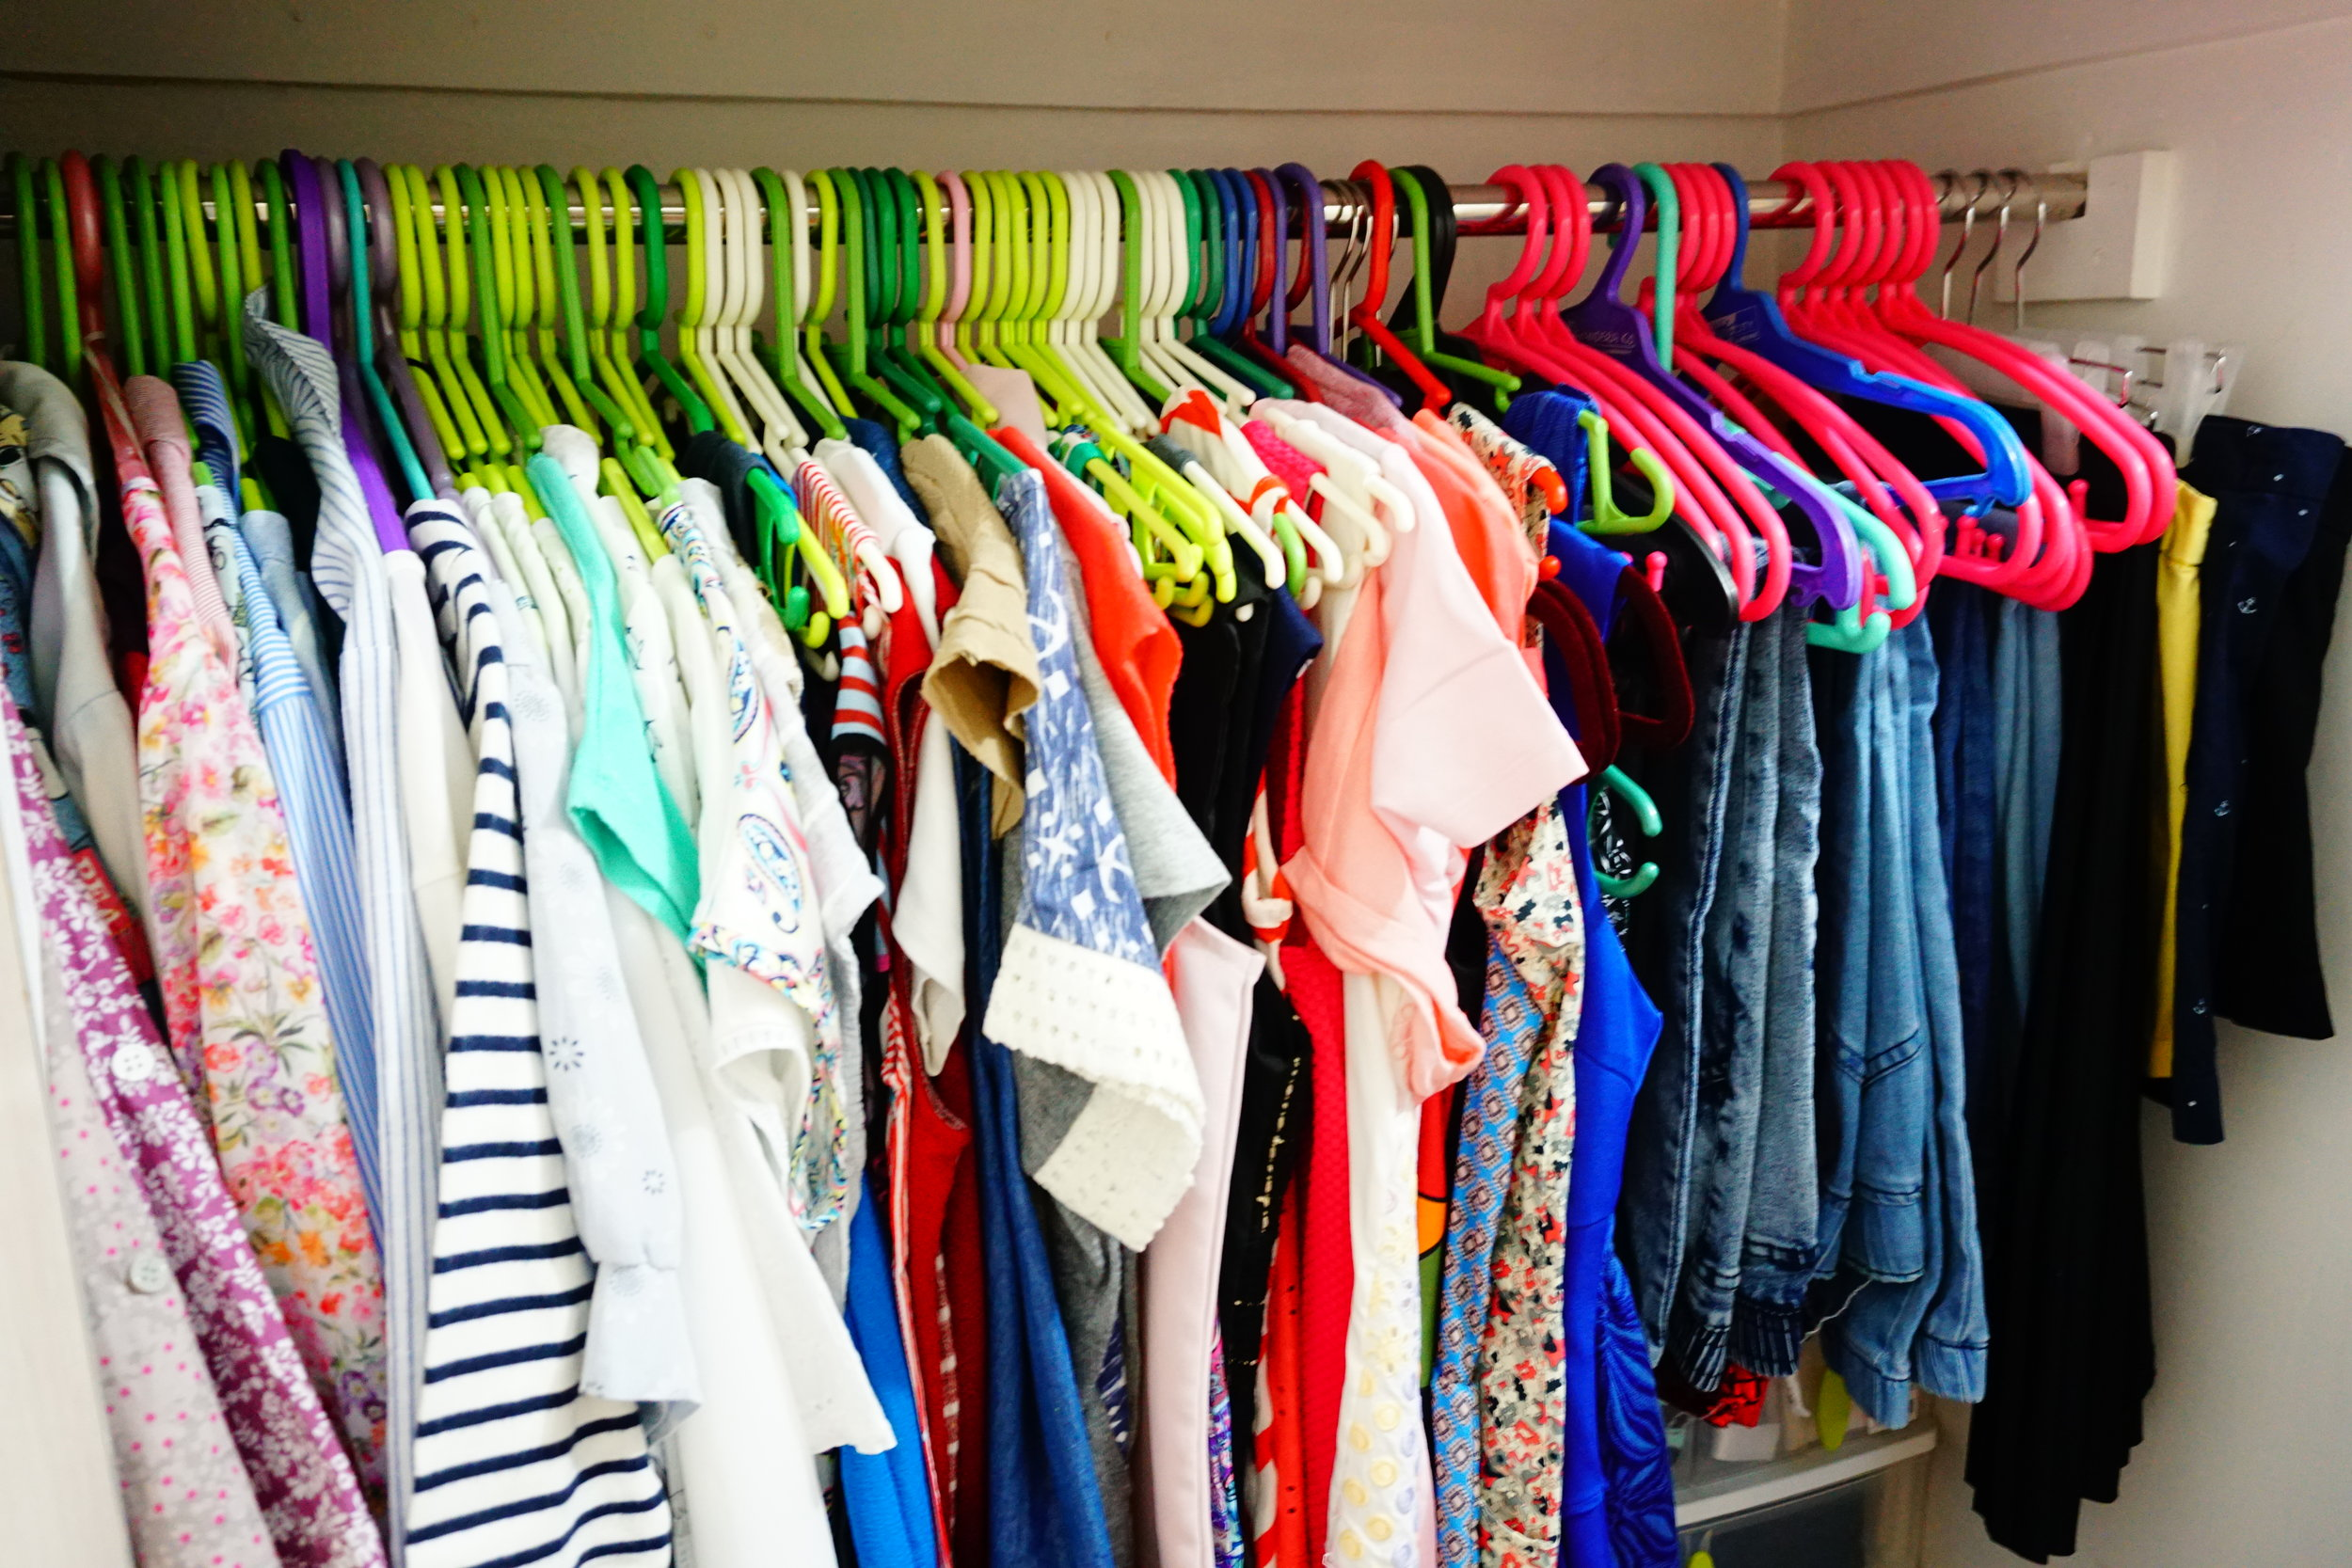 Almost all of my tops are hanged which made my closet looked so full